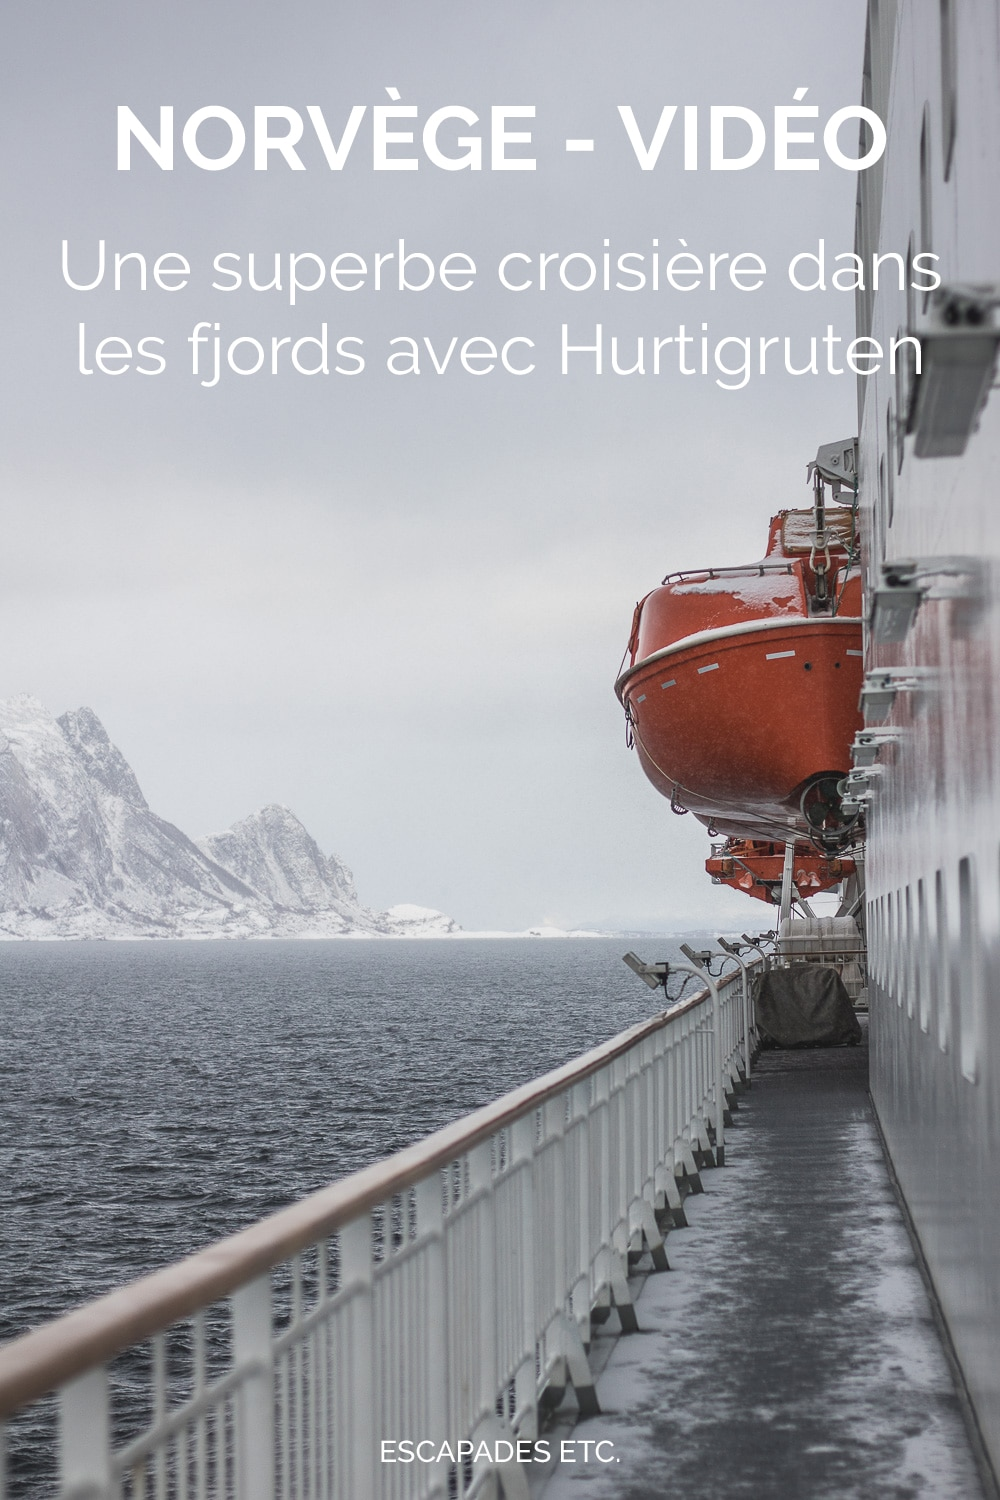 croisiere norvege video